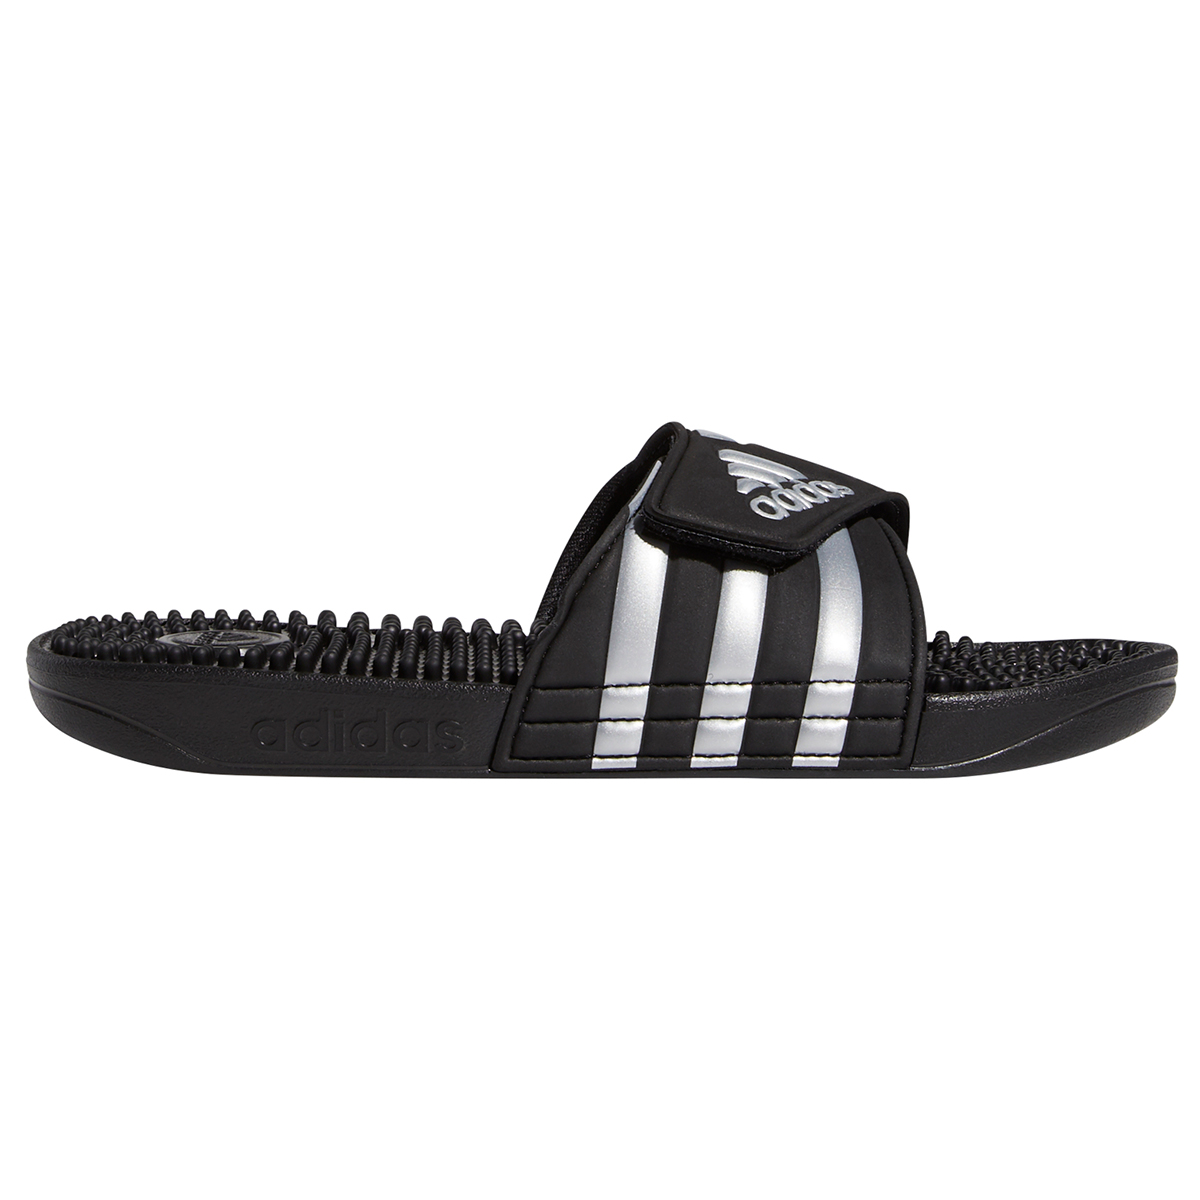 Adidas Women's Adissage Slides - Black, 7